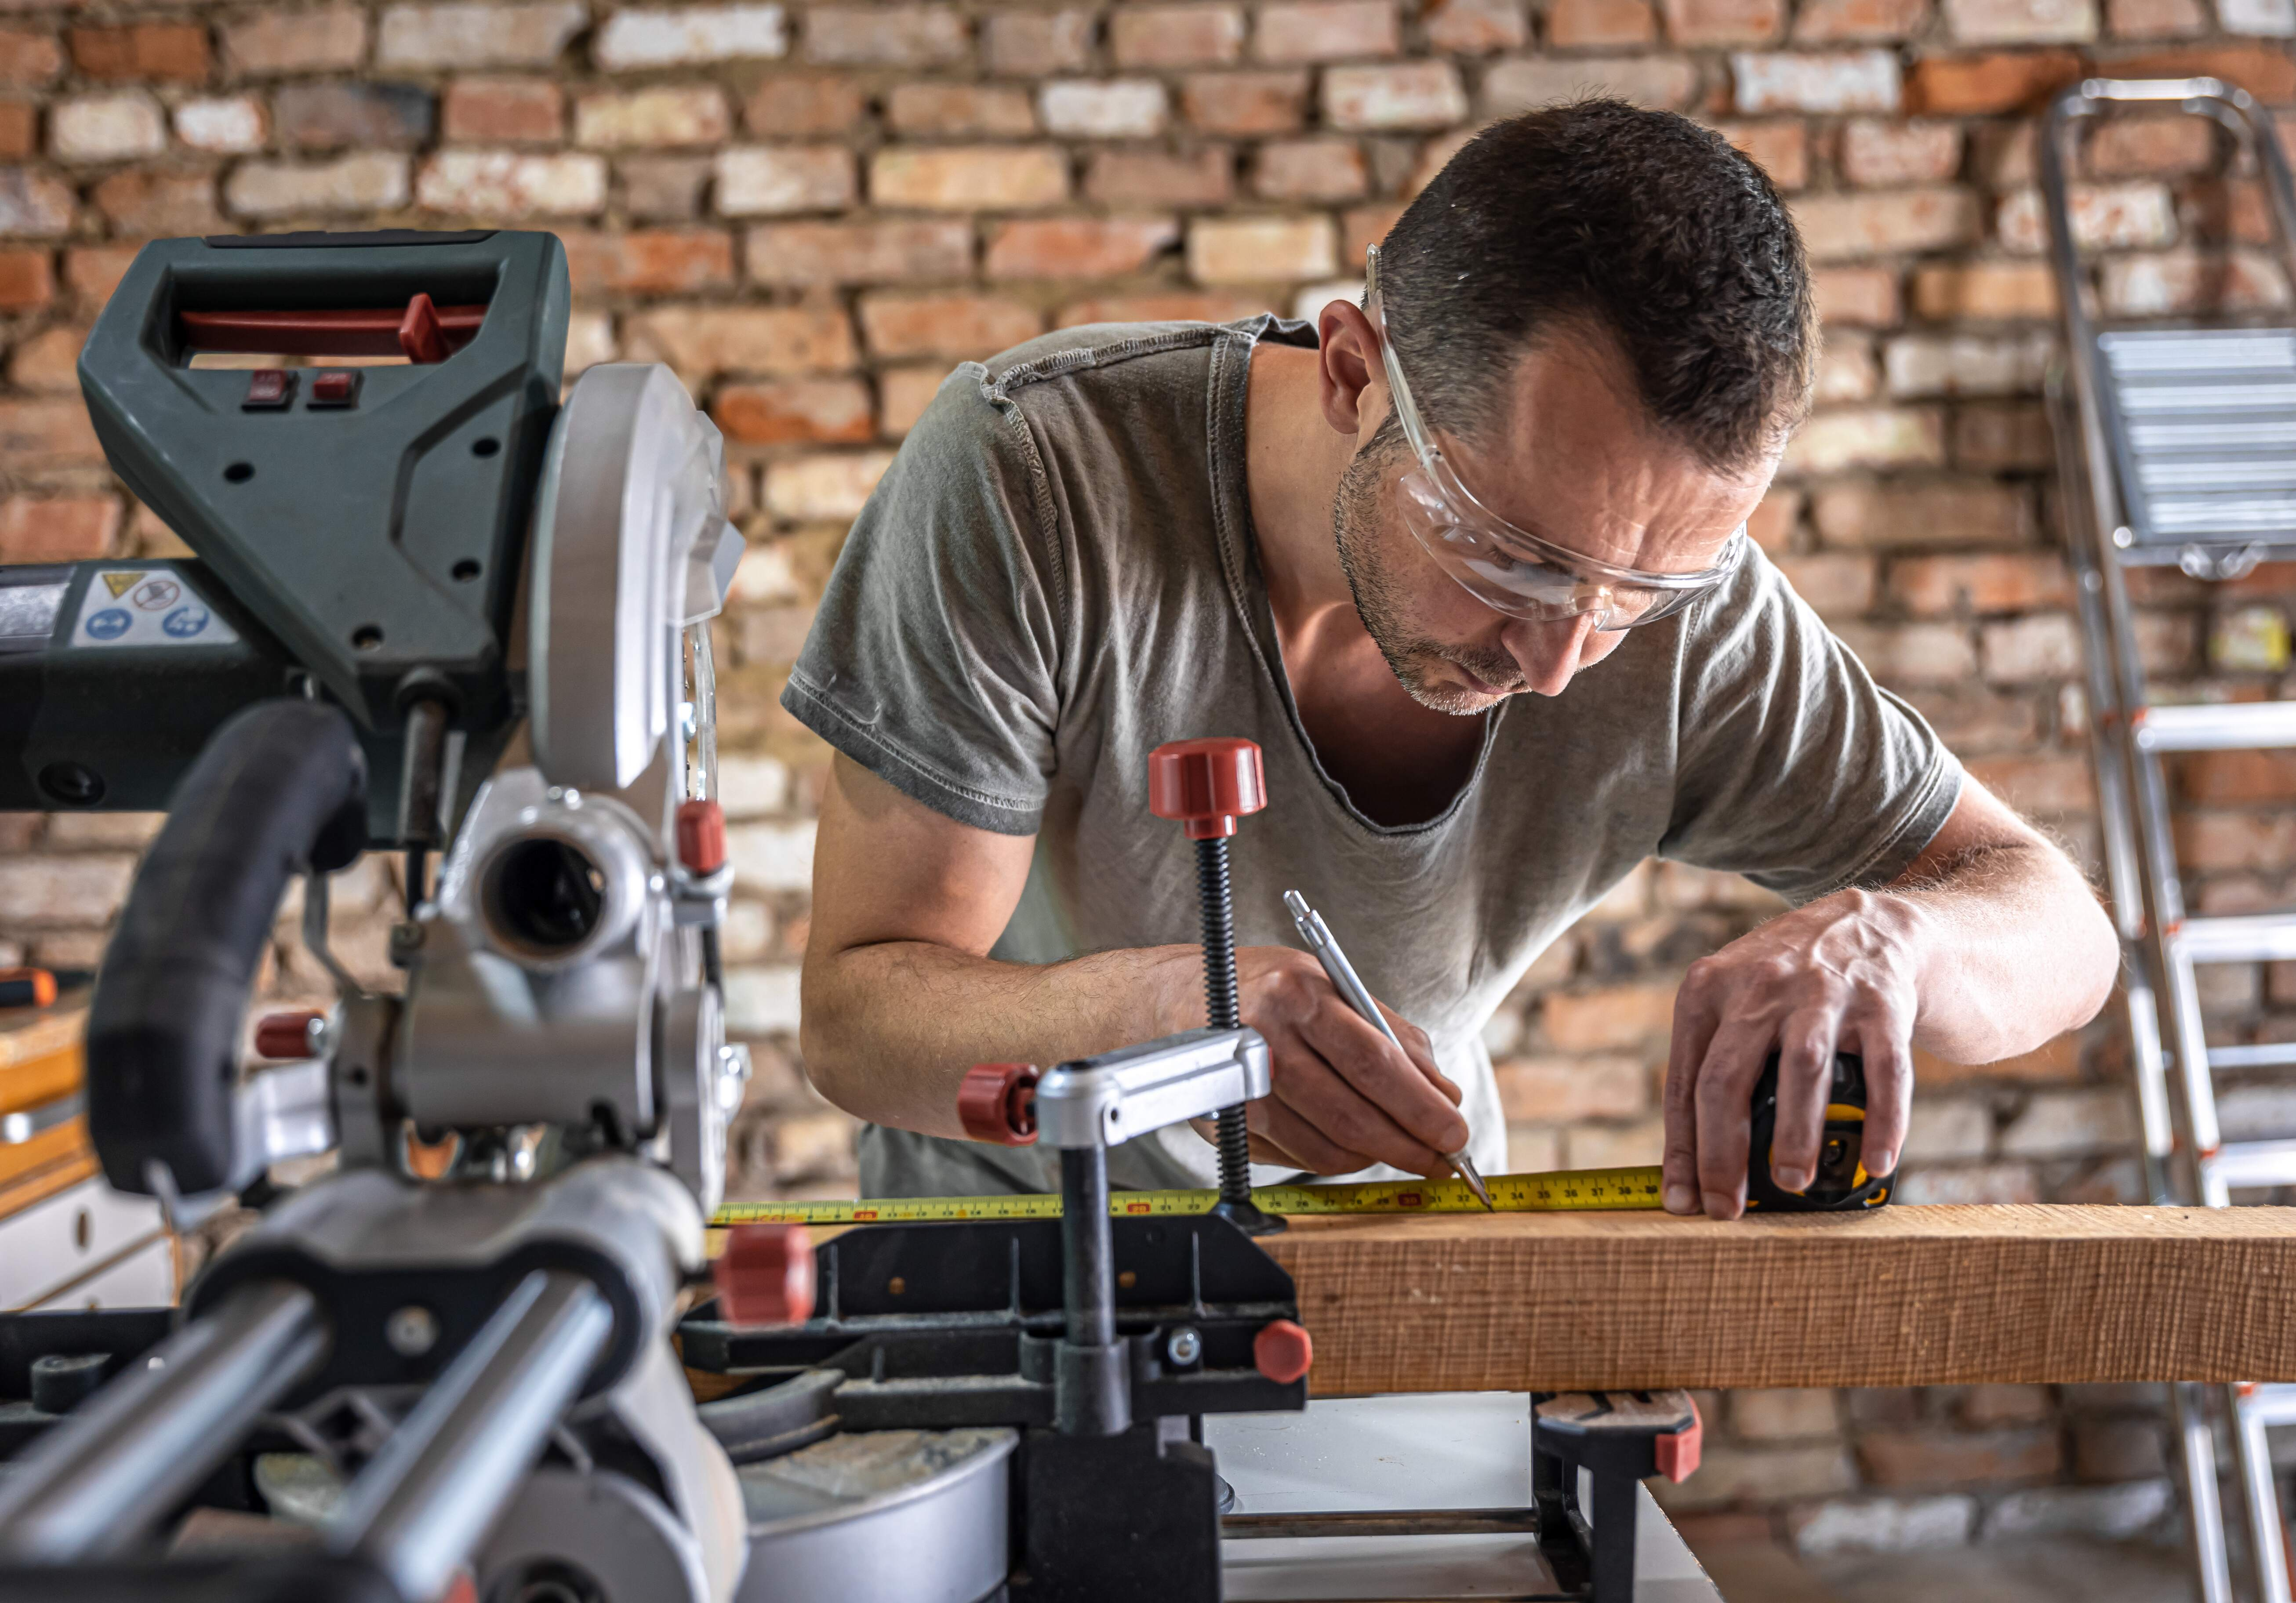 Which Mitre Saw Is Best? Our Top 3 Picks For Chop Saws